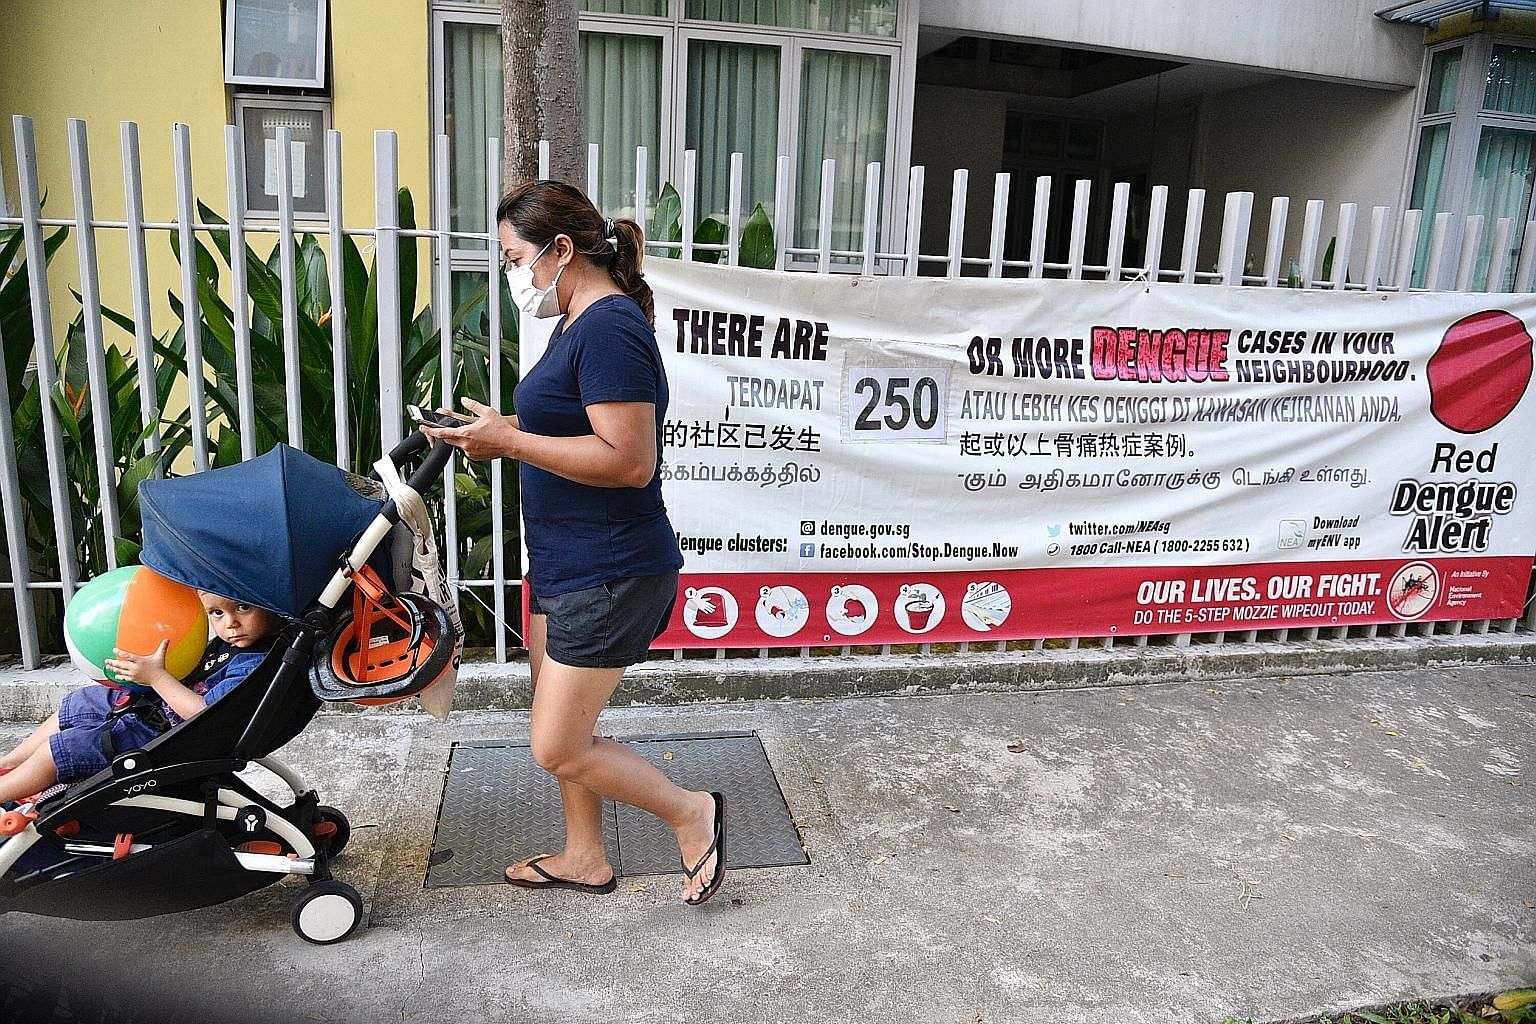 A dengue alert banner in Geylang. One of the two biggest clusters, each with 260 cases, is in the Aljunied-Geylang-Guillemard area.